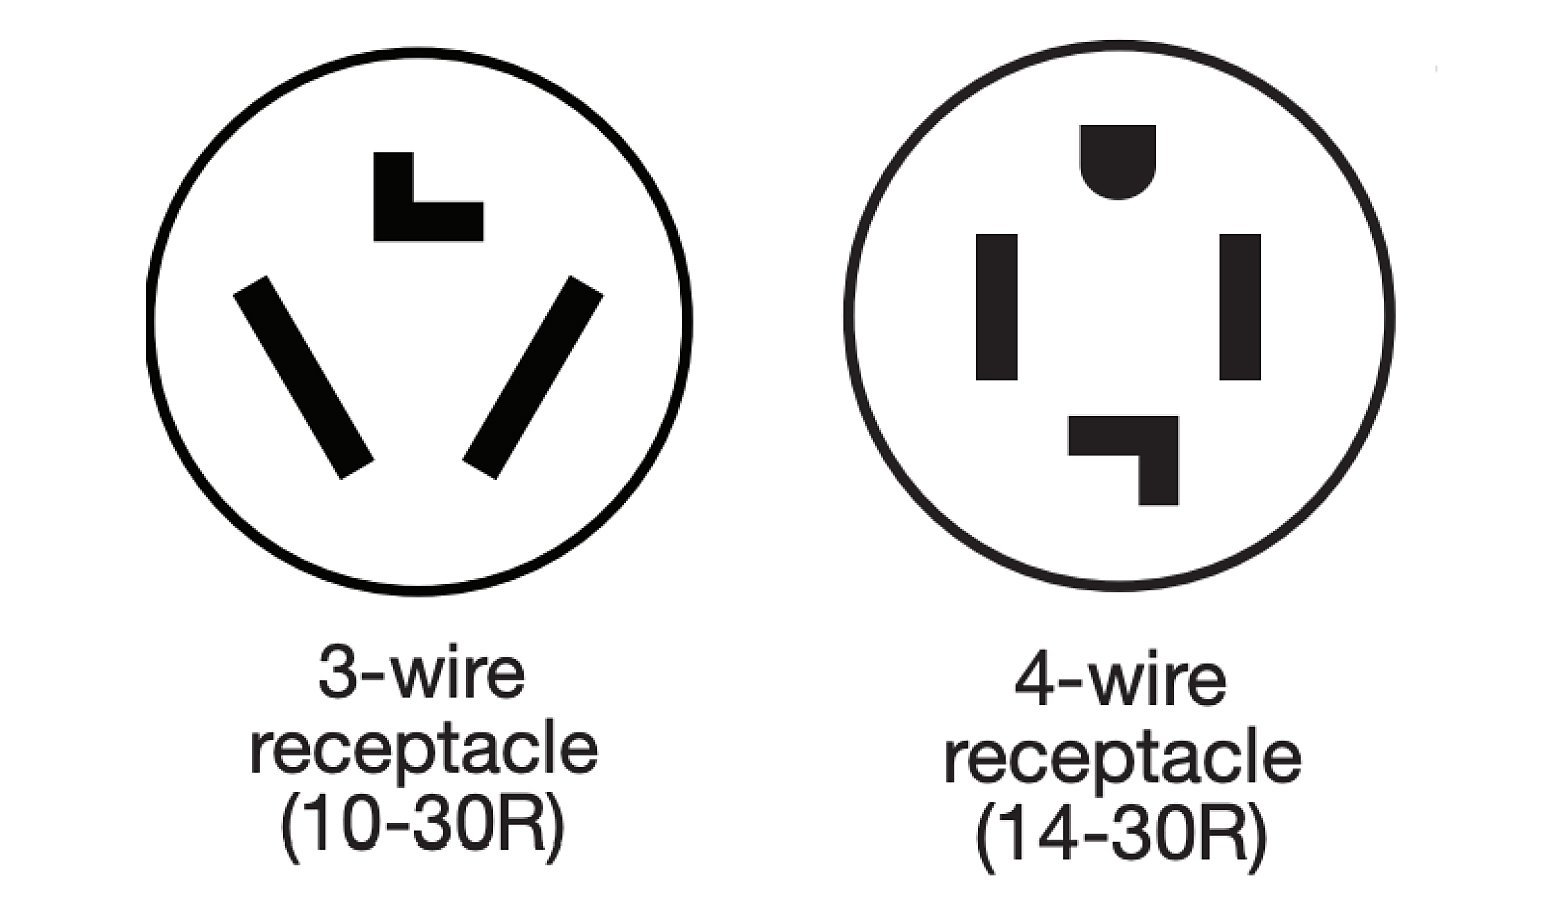 An image comparing 3-wire versus 4-wire receptacles